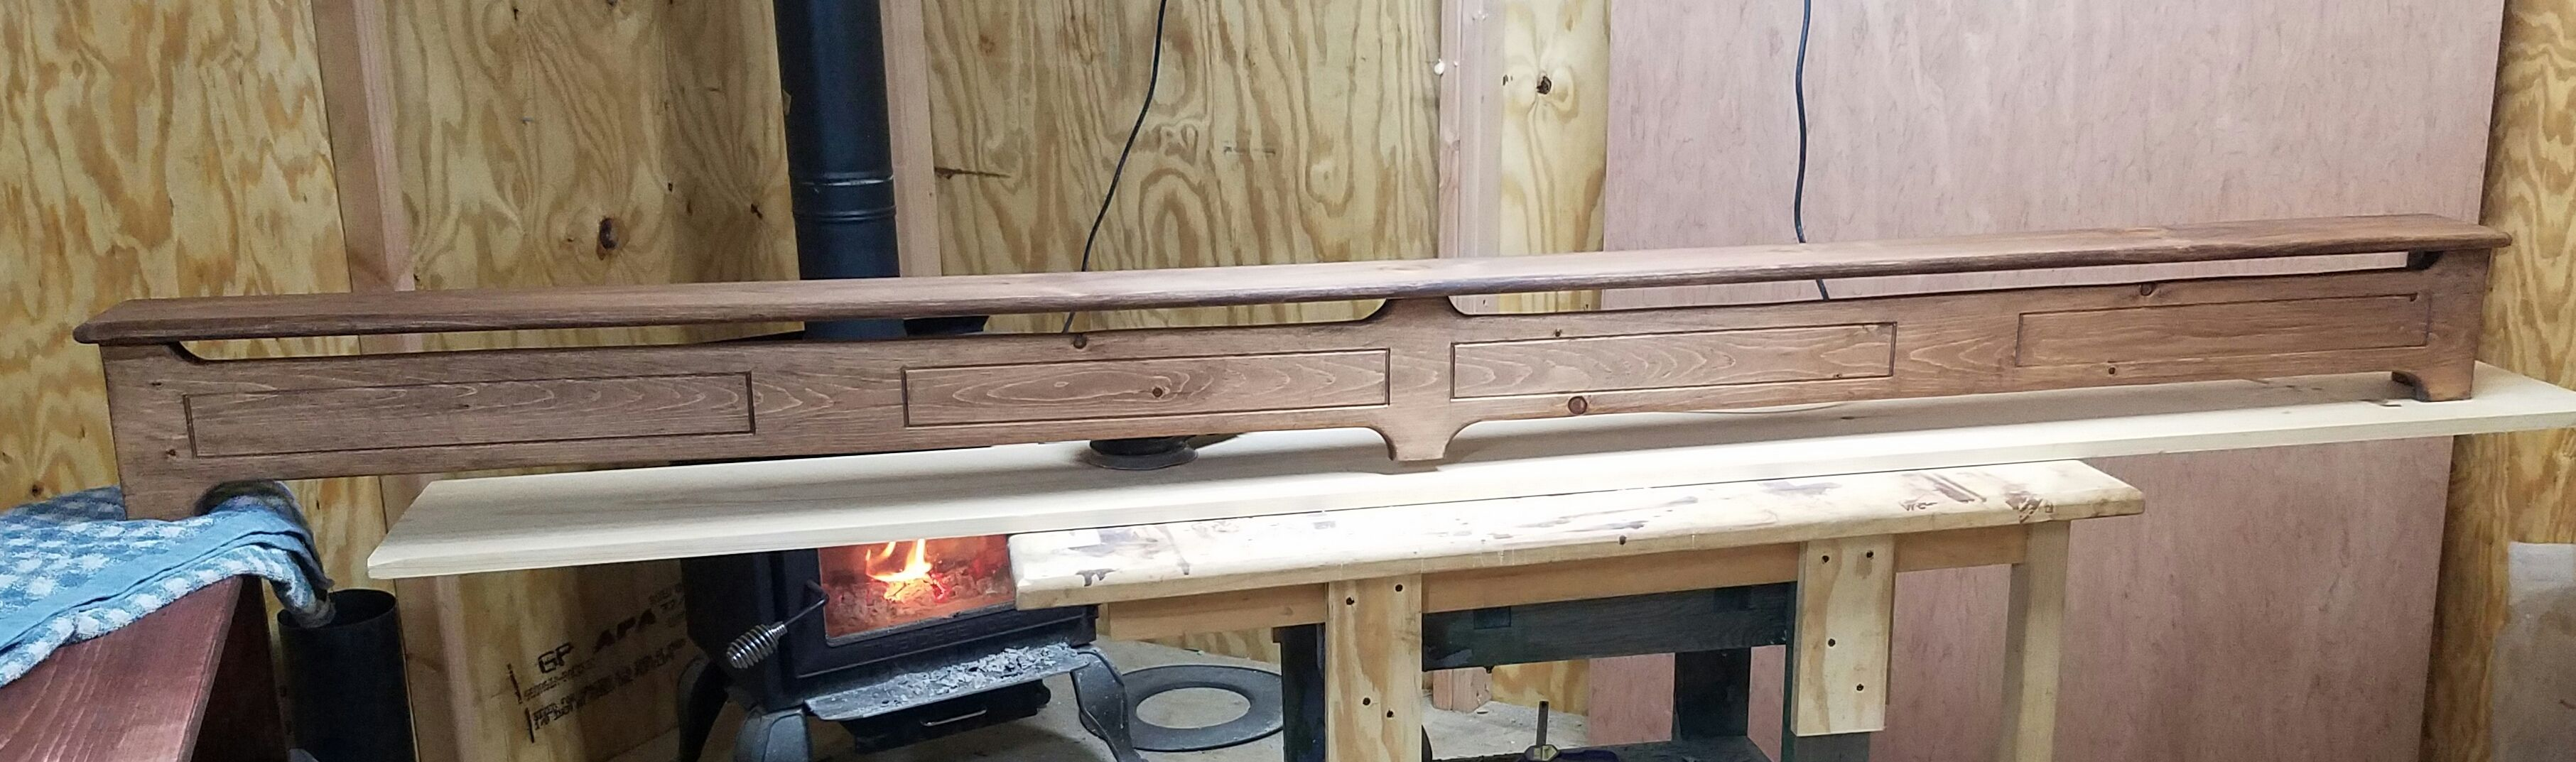 Hand Made Decorative Baseboard Heater Cover By Family Sawmill Restorations And Creations Custommade Com